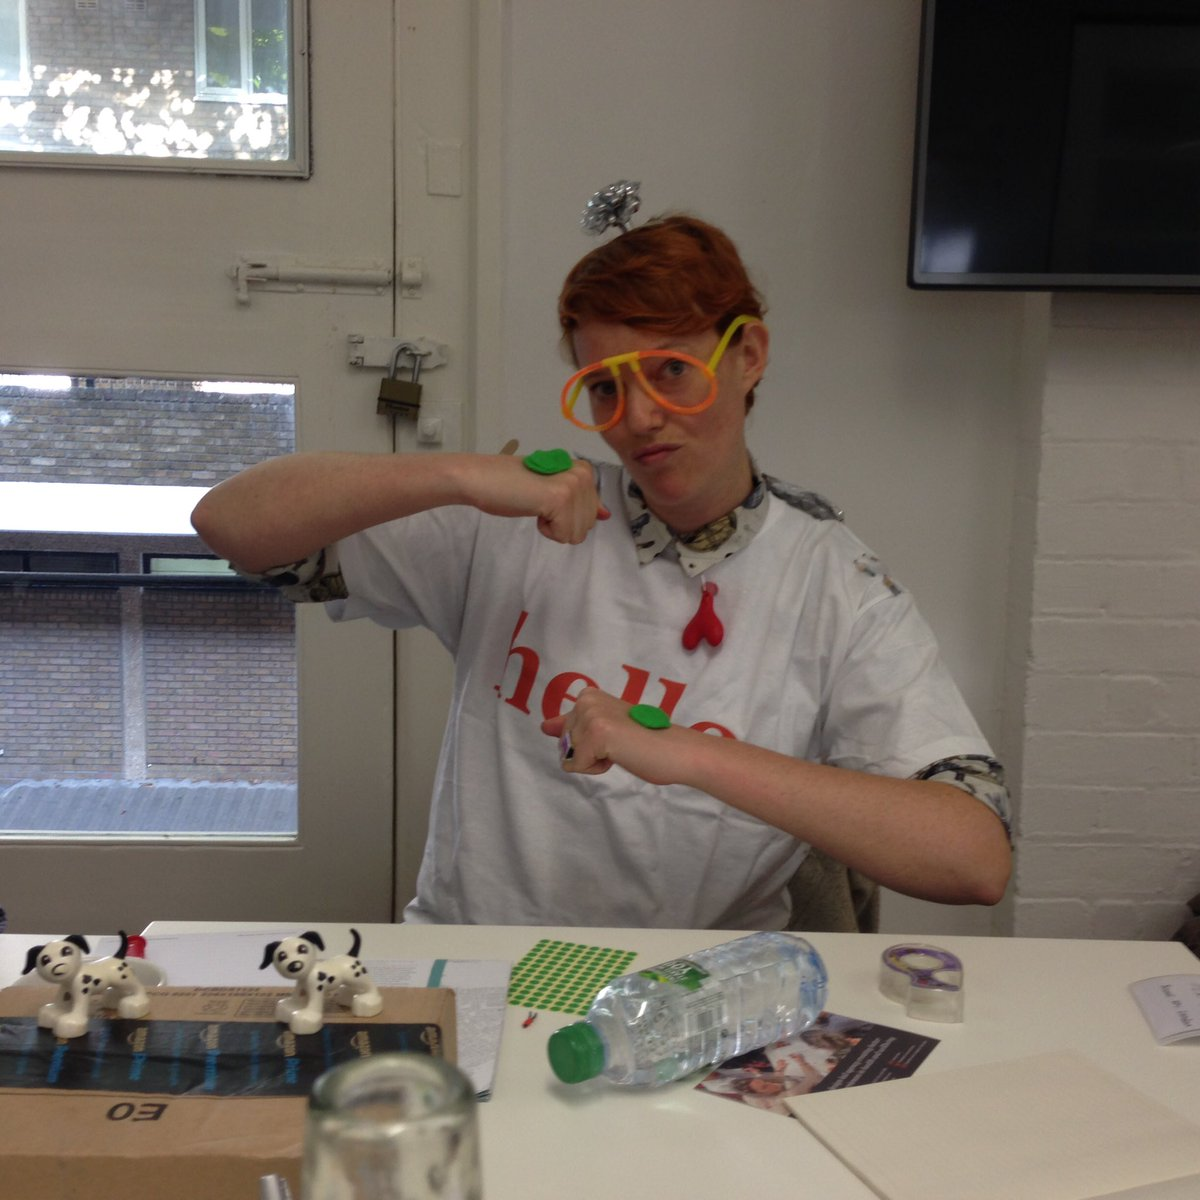 Katie Baggs, Captain of the Ambassadors at the Service Design Fringe Festival, gets stuck into some live prototyping.